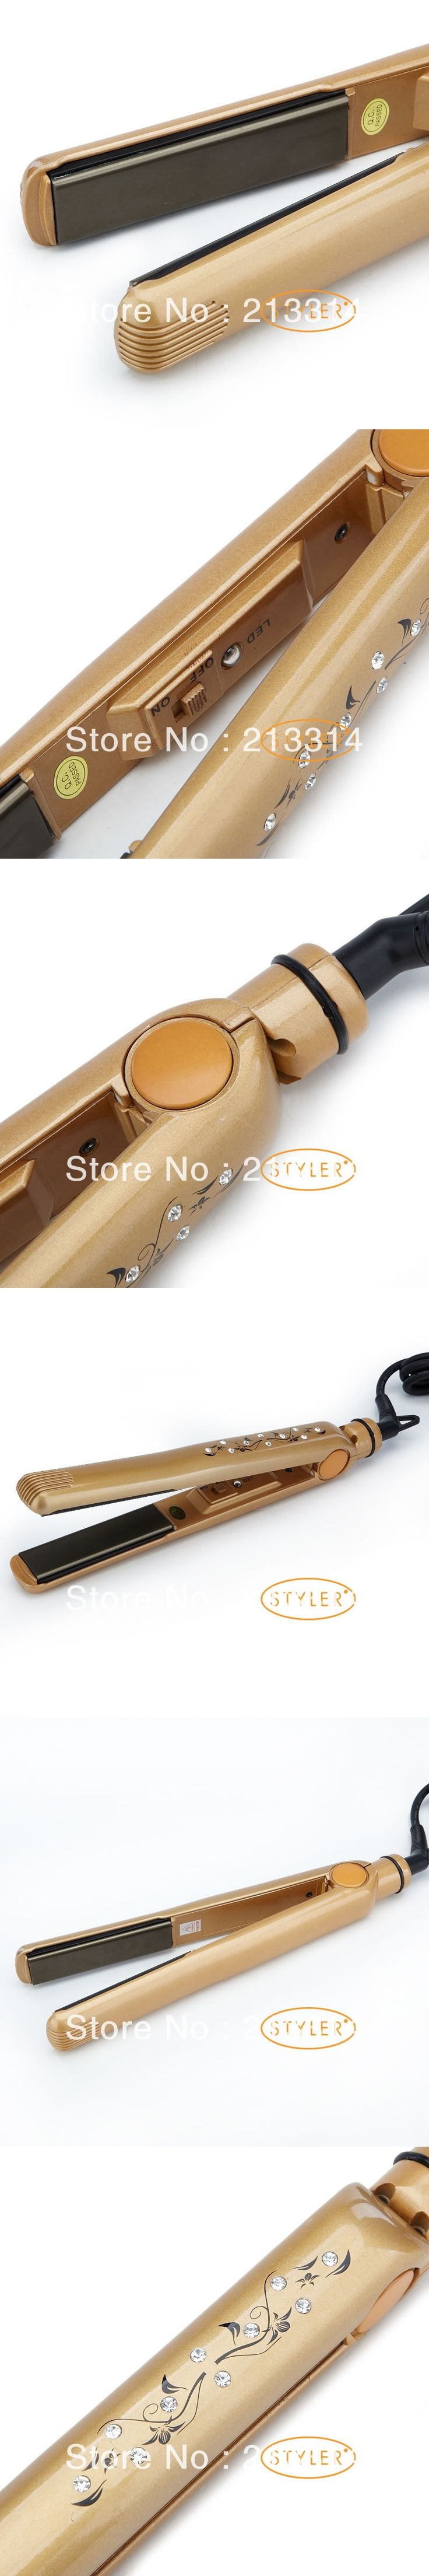 Fashion High quality Diamond straightening iron, Hot Selling professional hair straightener iron Brown  Fast shipping